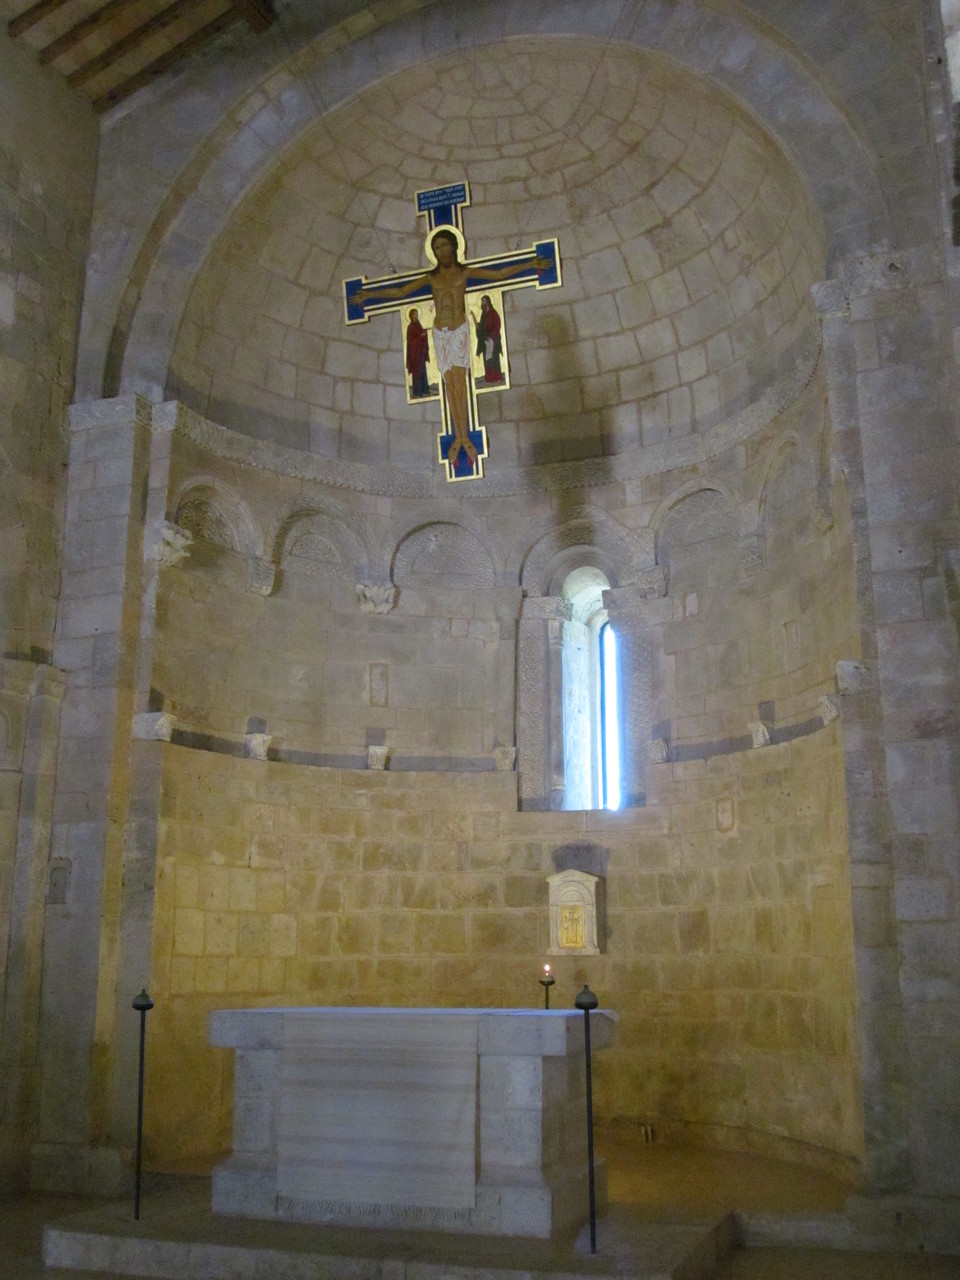 Apse of a beautiful Romanesque church in a tour environmental and religious - Abside di una bellissima chiesa romanica in un tour ambientale e religioso